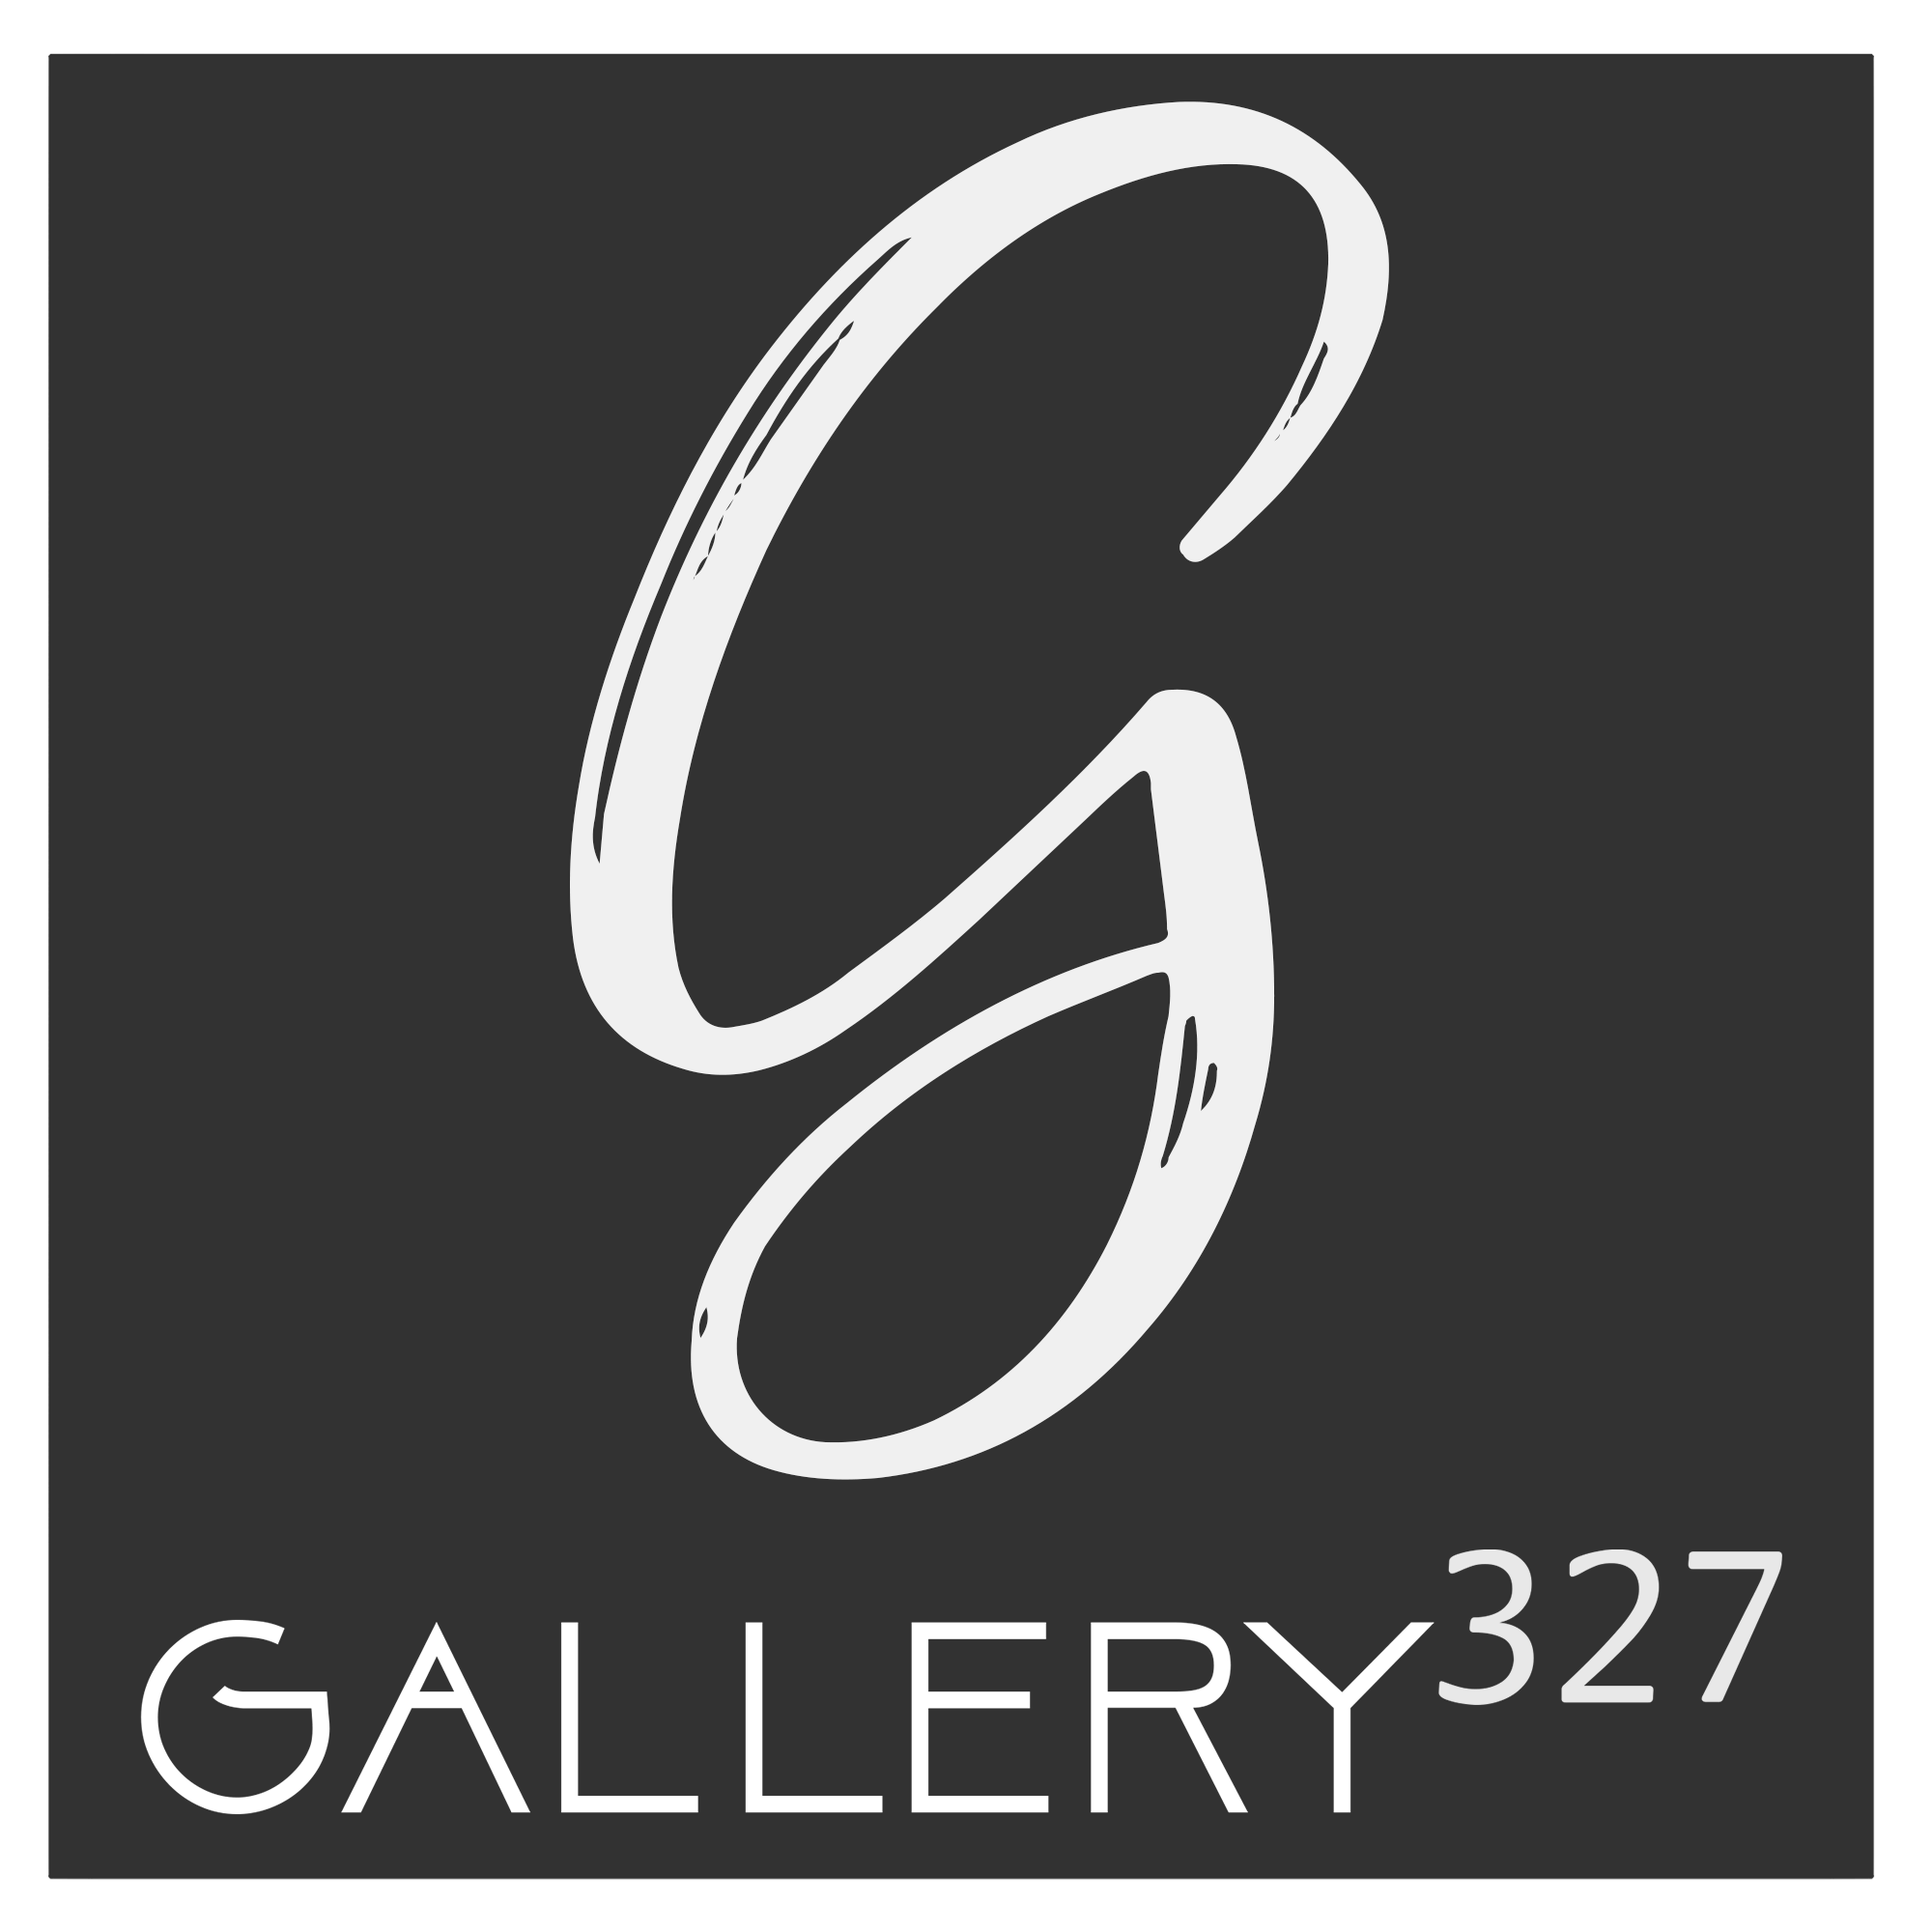 Gallery 327